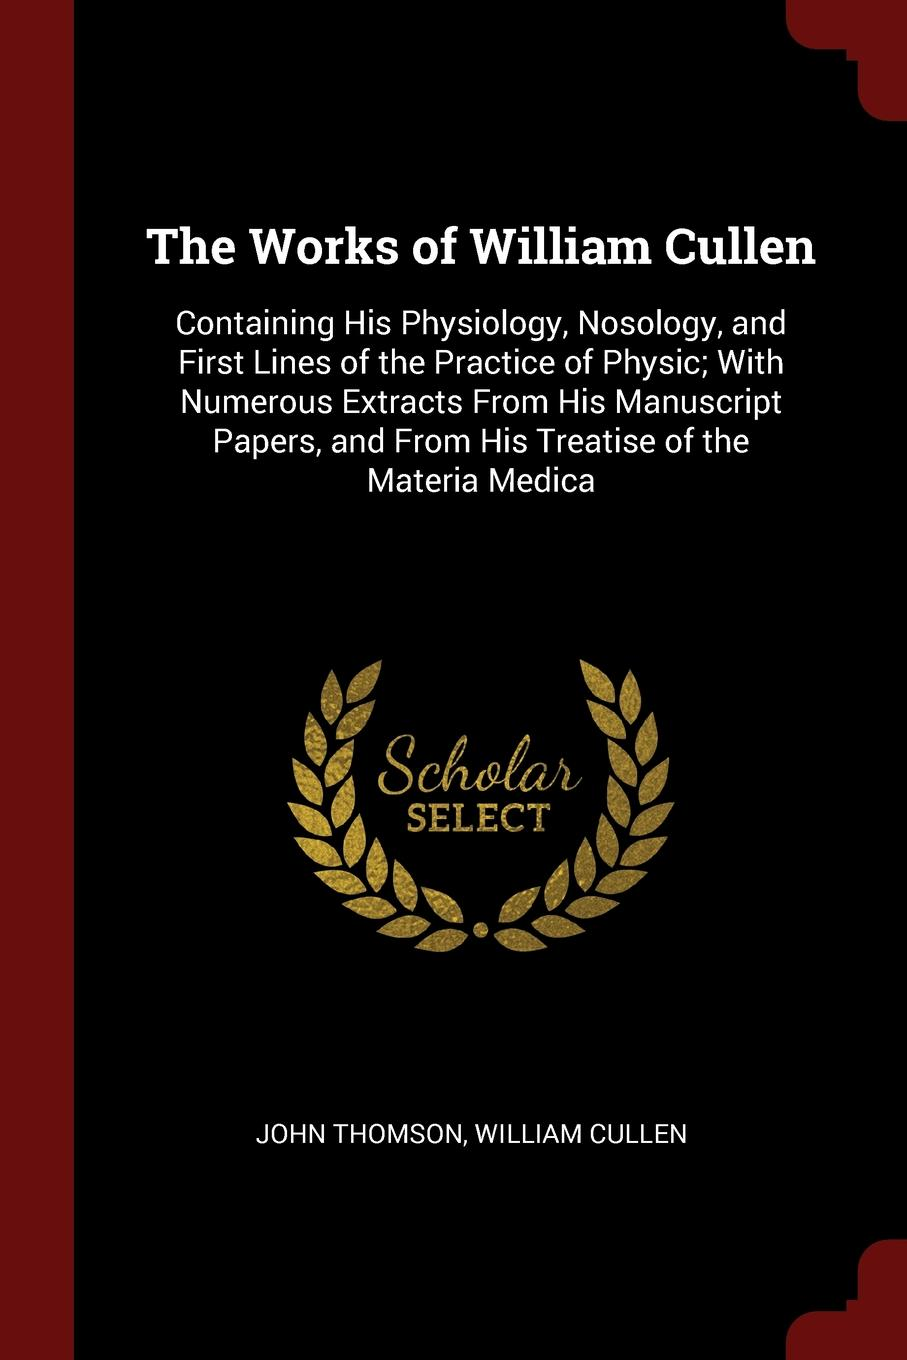 John Thomson, William Cullen The Works of William Cullen. Containing His Physiology, Nosology, and First Lines of the Practice of Physic; With Numerous Extracts From His Manuscript Papers, and From His Treatise of the Materia Medica william cullen first lines of the practice of physic vol 1